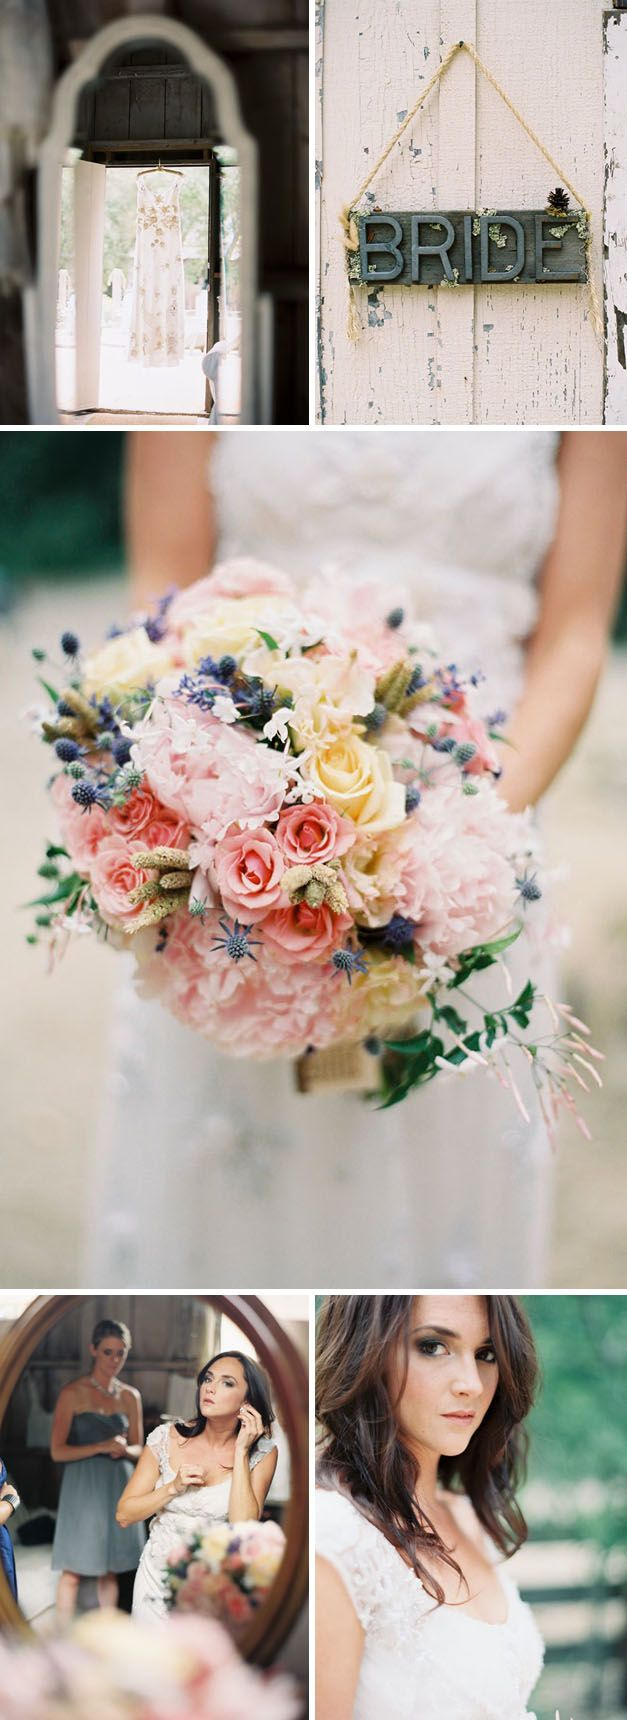 best wedding ideas images on pinterest wedding inspiration